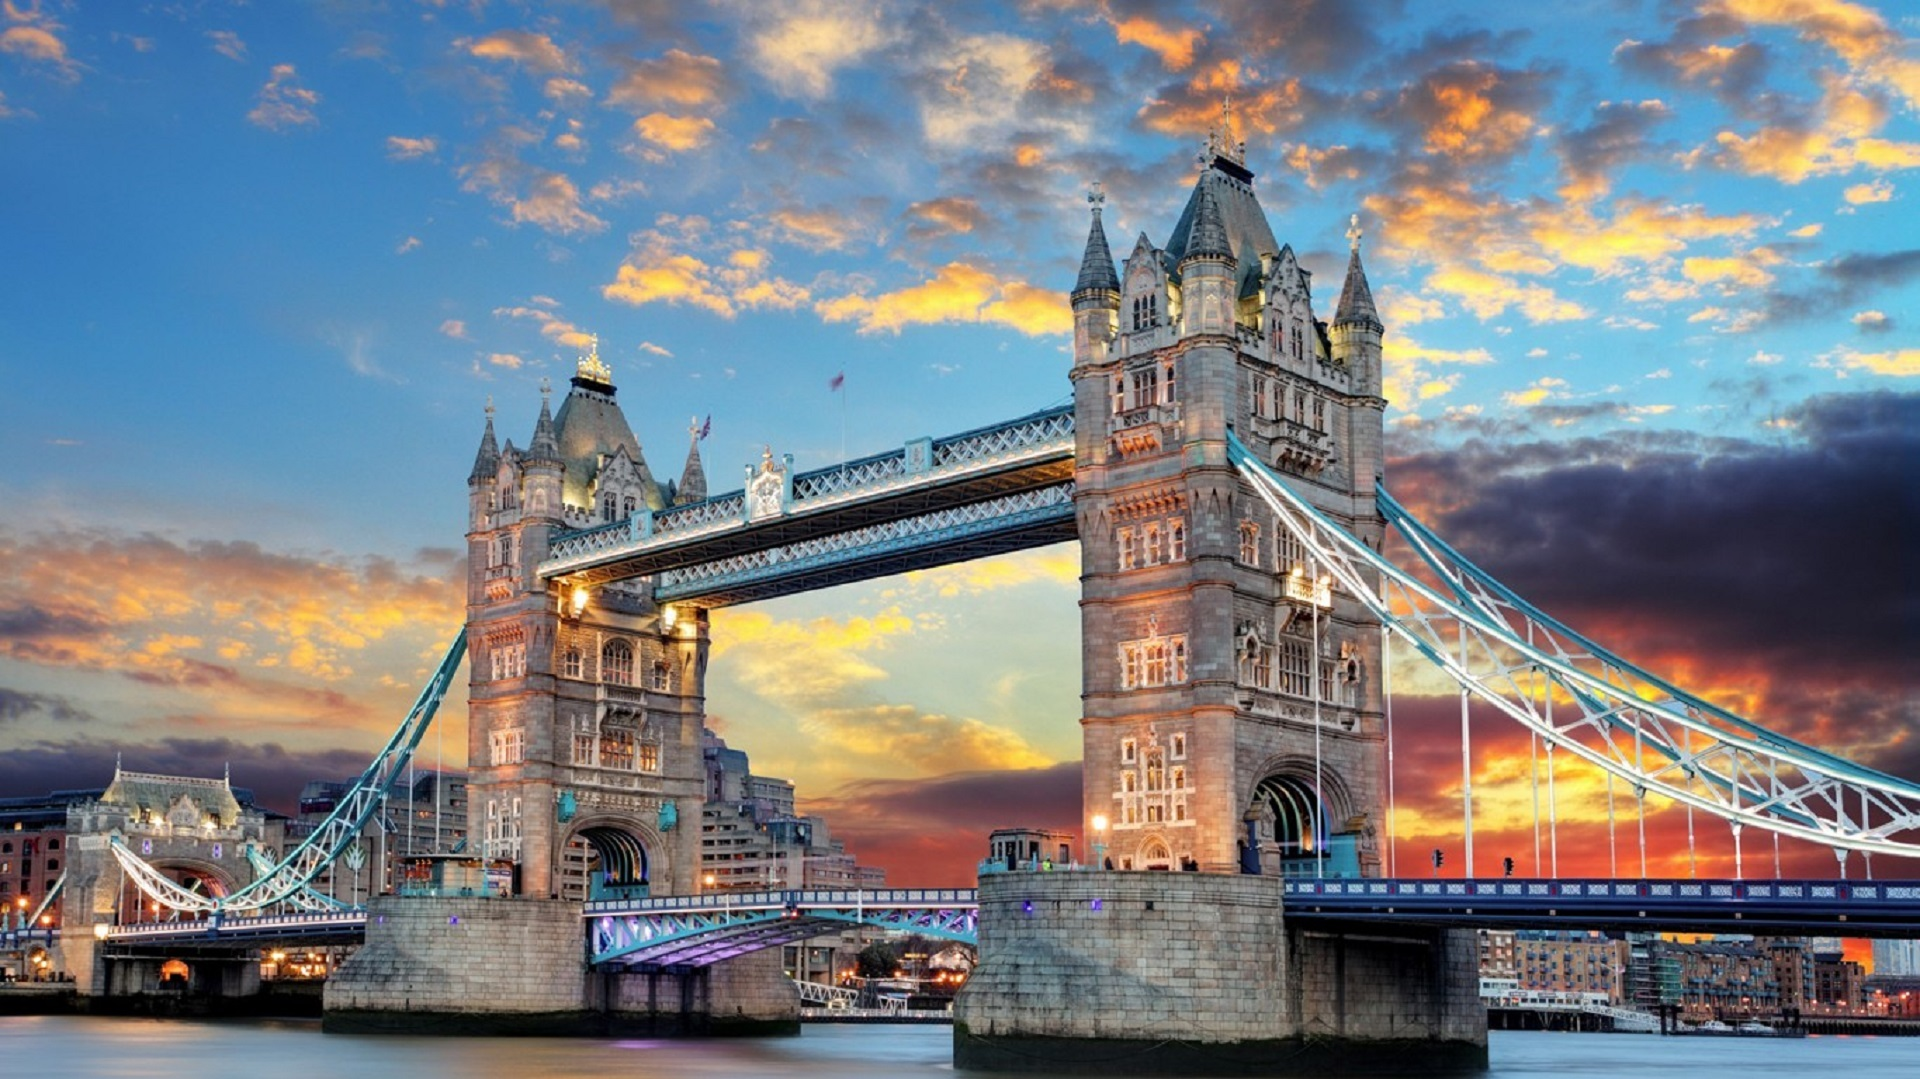 Tower Bridge, Architecture, Bridge, City, Construction, HQ Photo